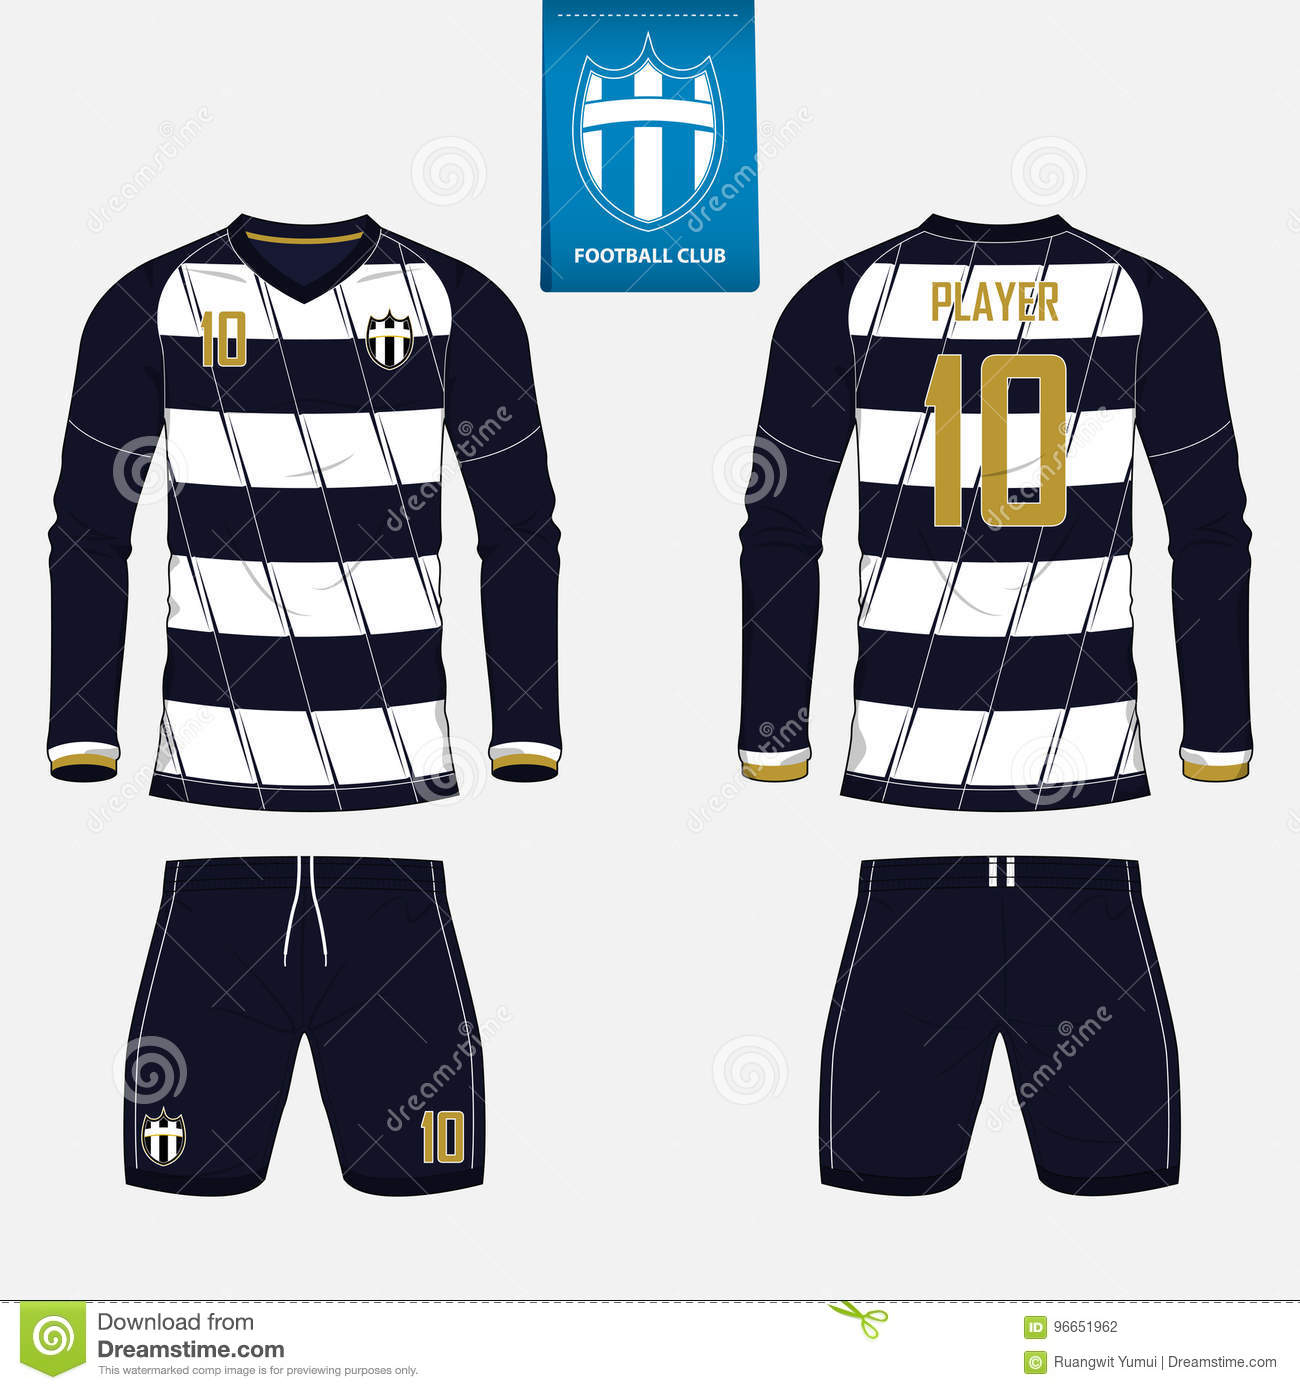 soccer jersey or football kit template for football club football